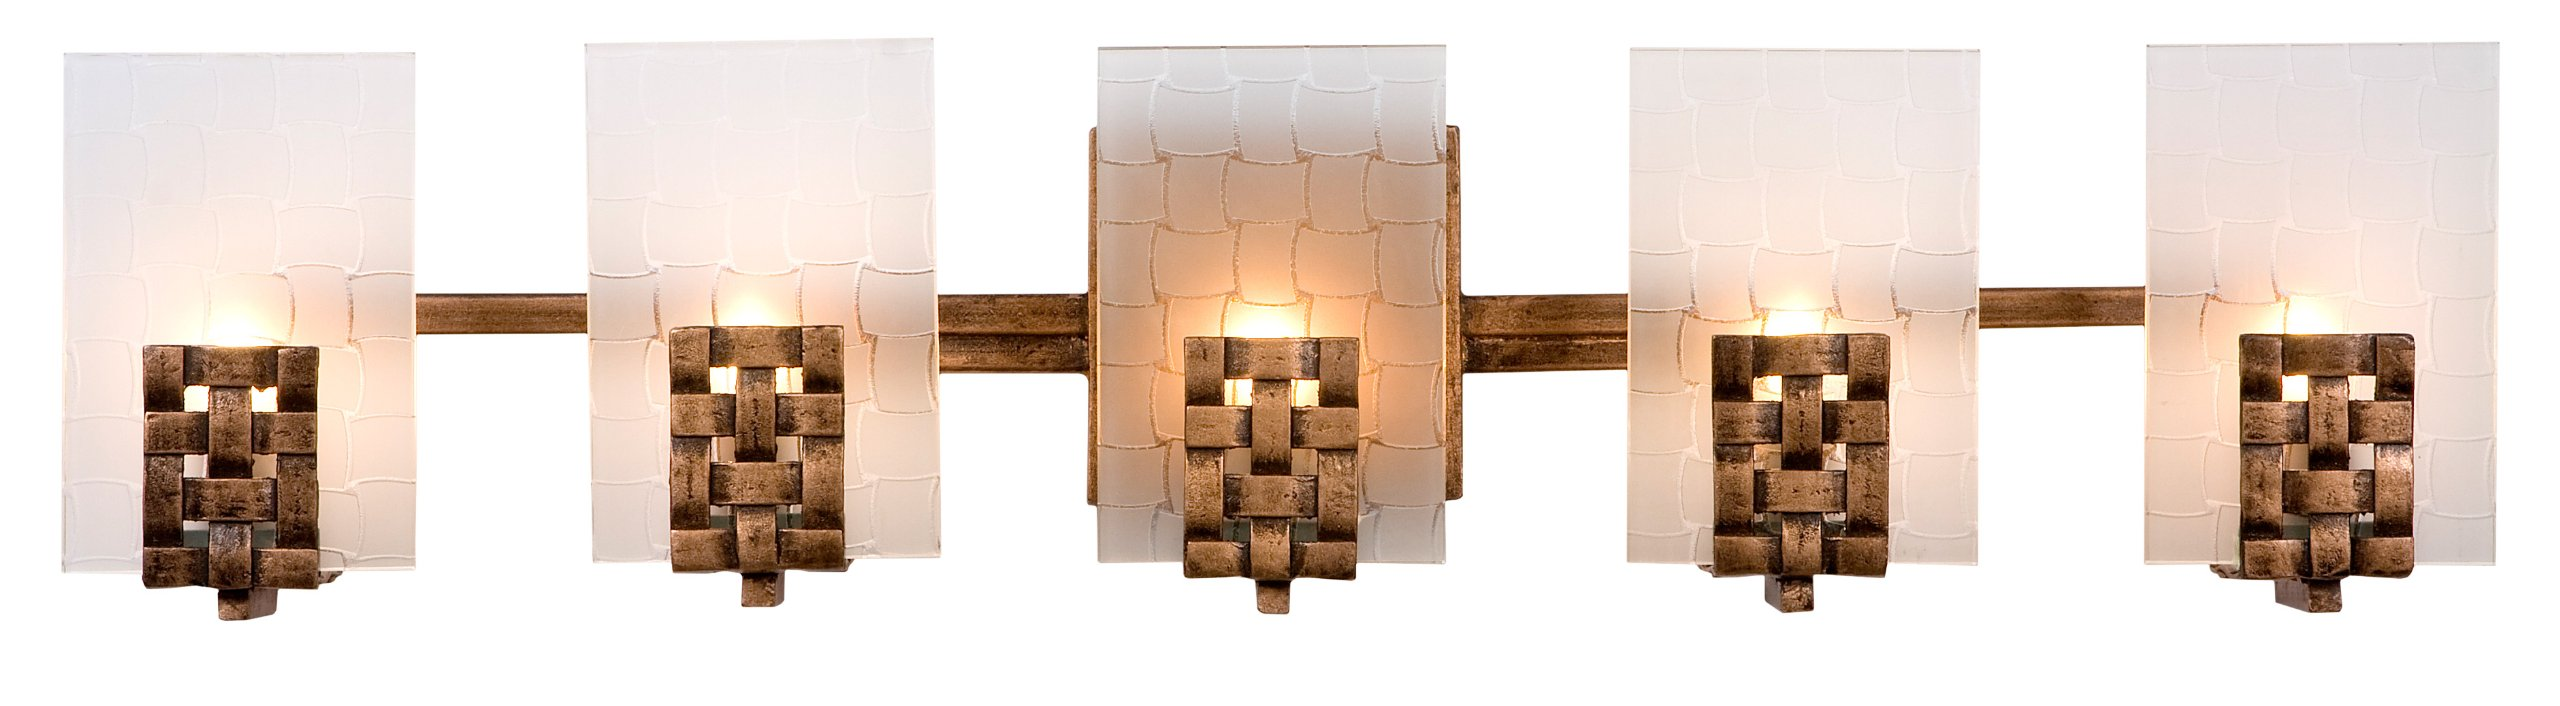 Varaluz 180B05 Dreamweaver 5-Light Vanity - Blackened Copper Finish with Frosted Recycled Glass